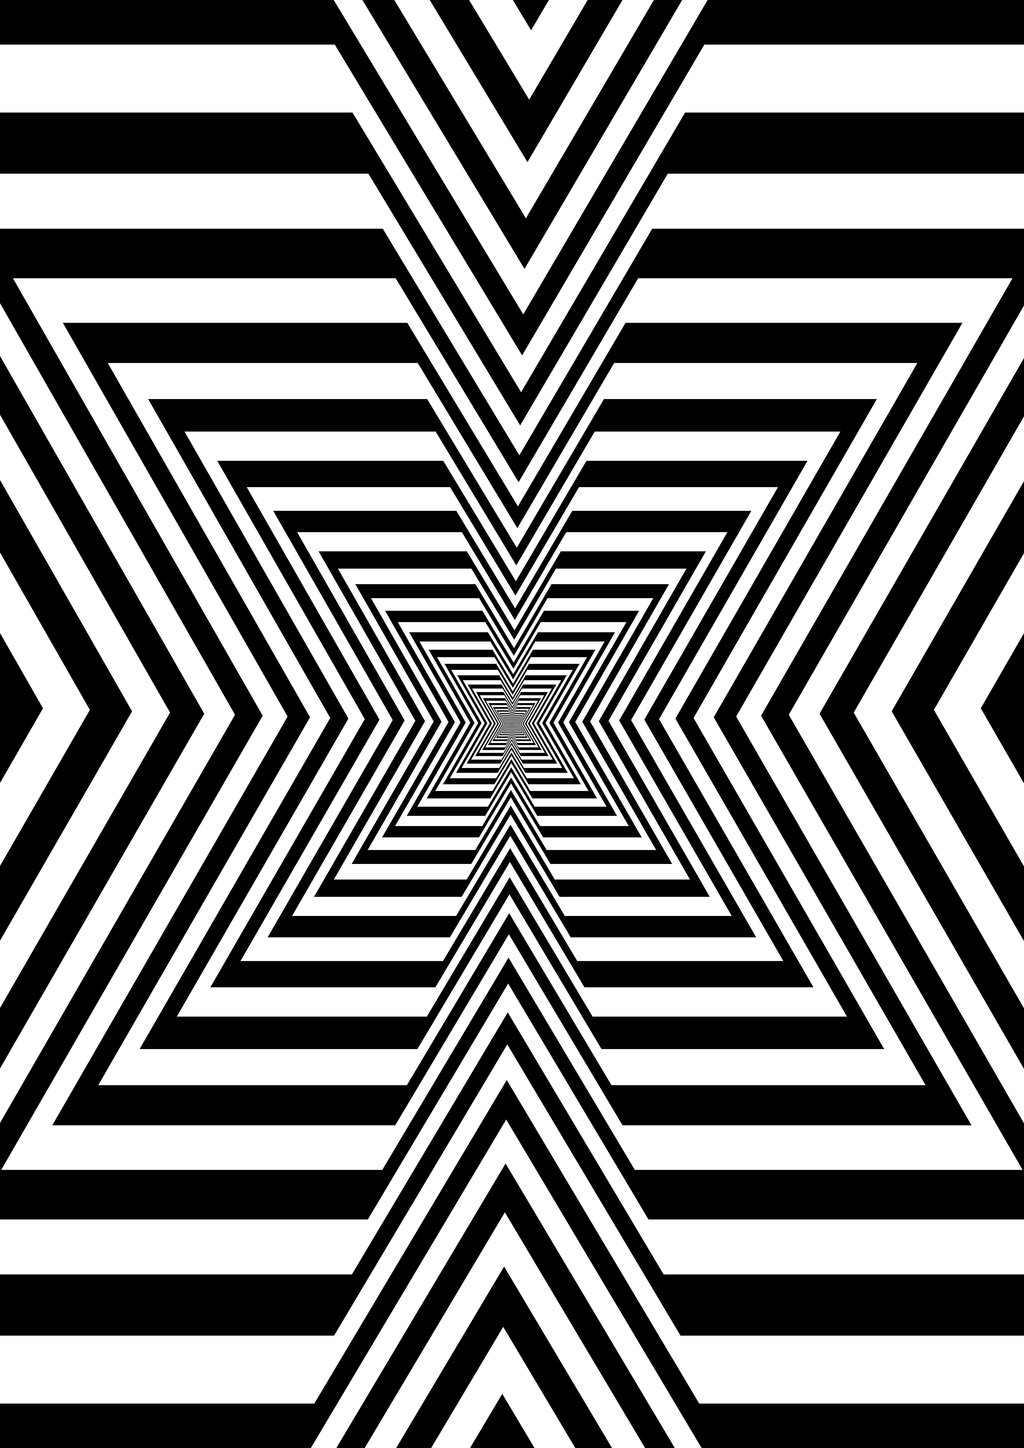 Trippy Black And White Design